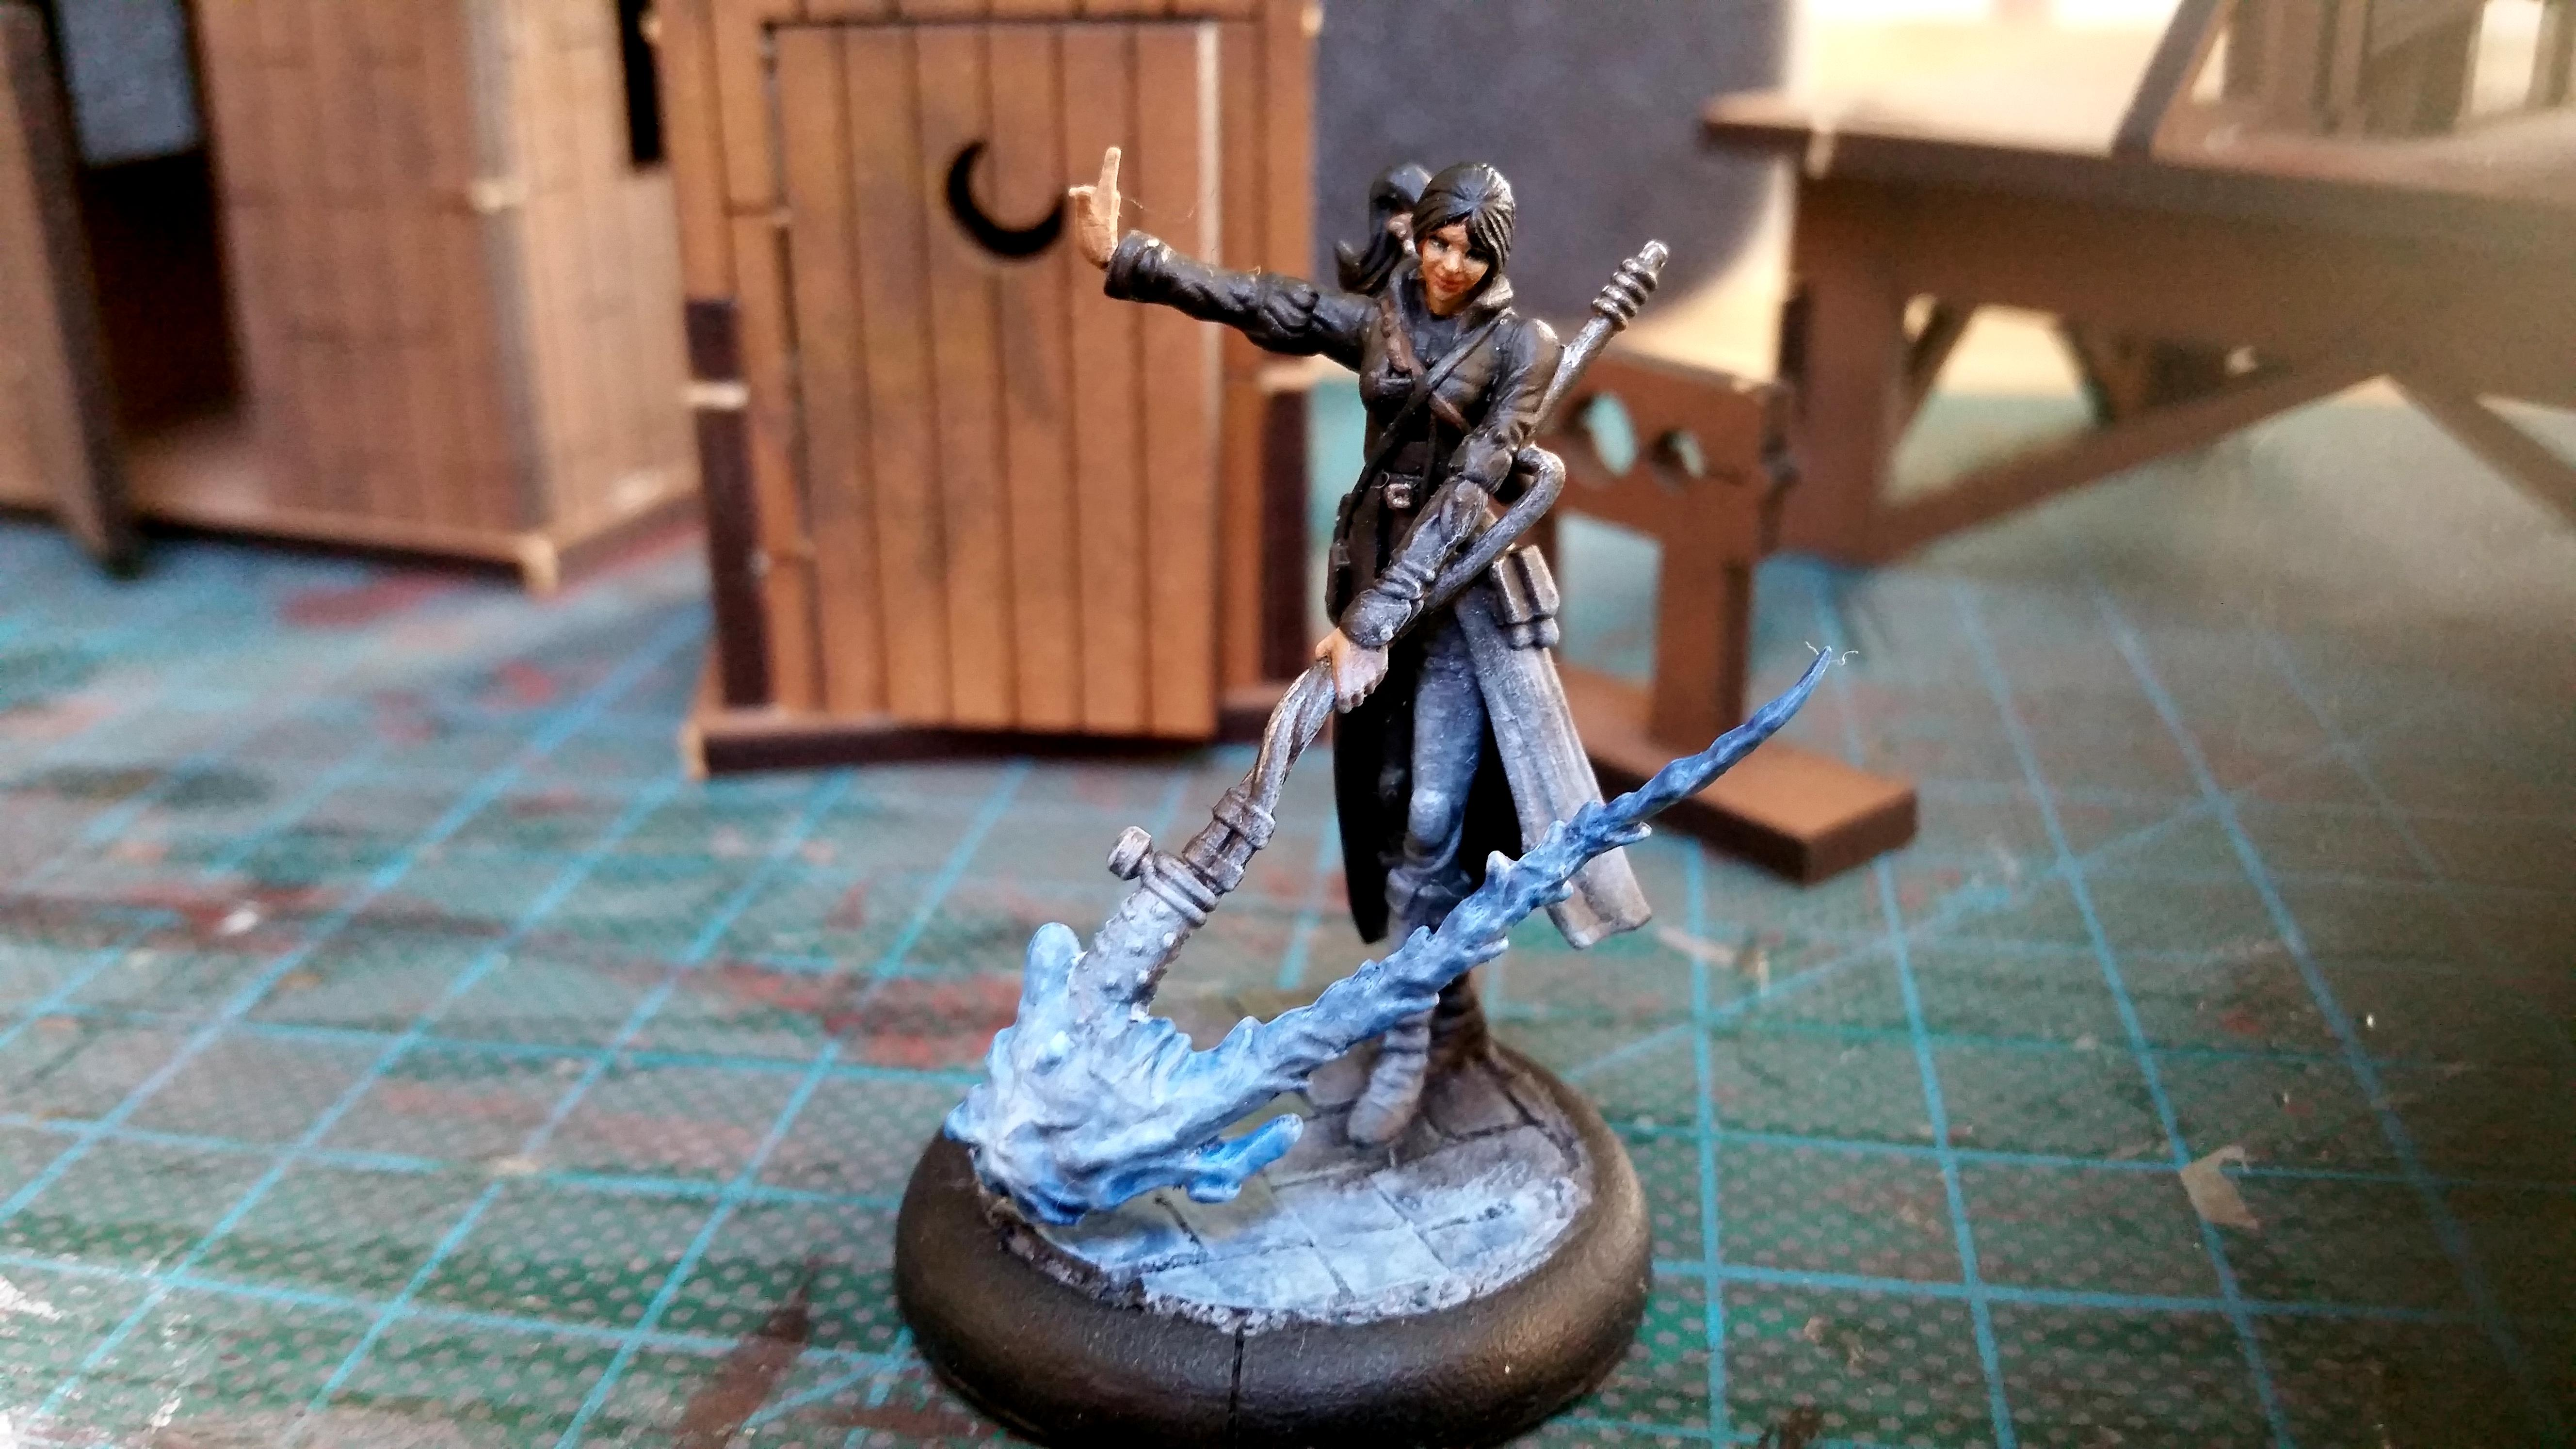 Malifaux, Outcast, Sisters Of Battle, Viktoria Of Ashes